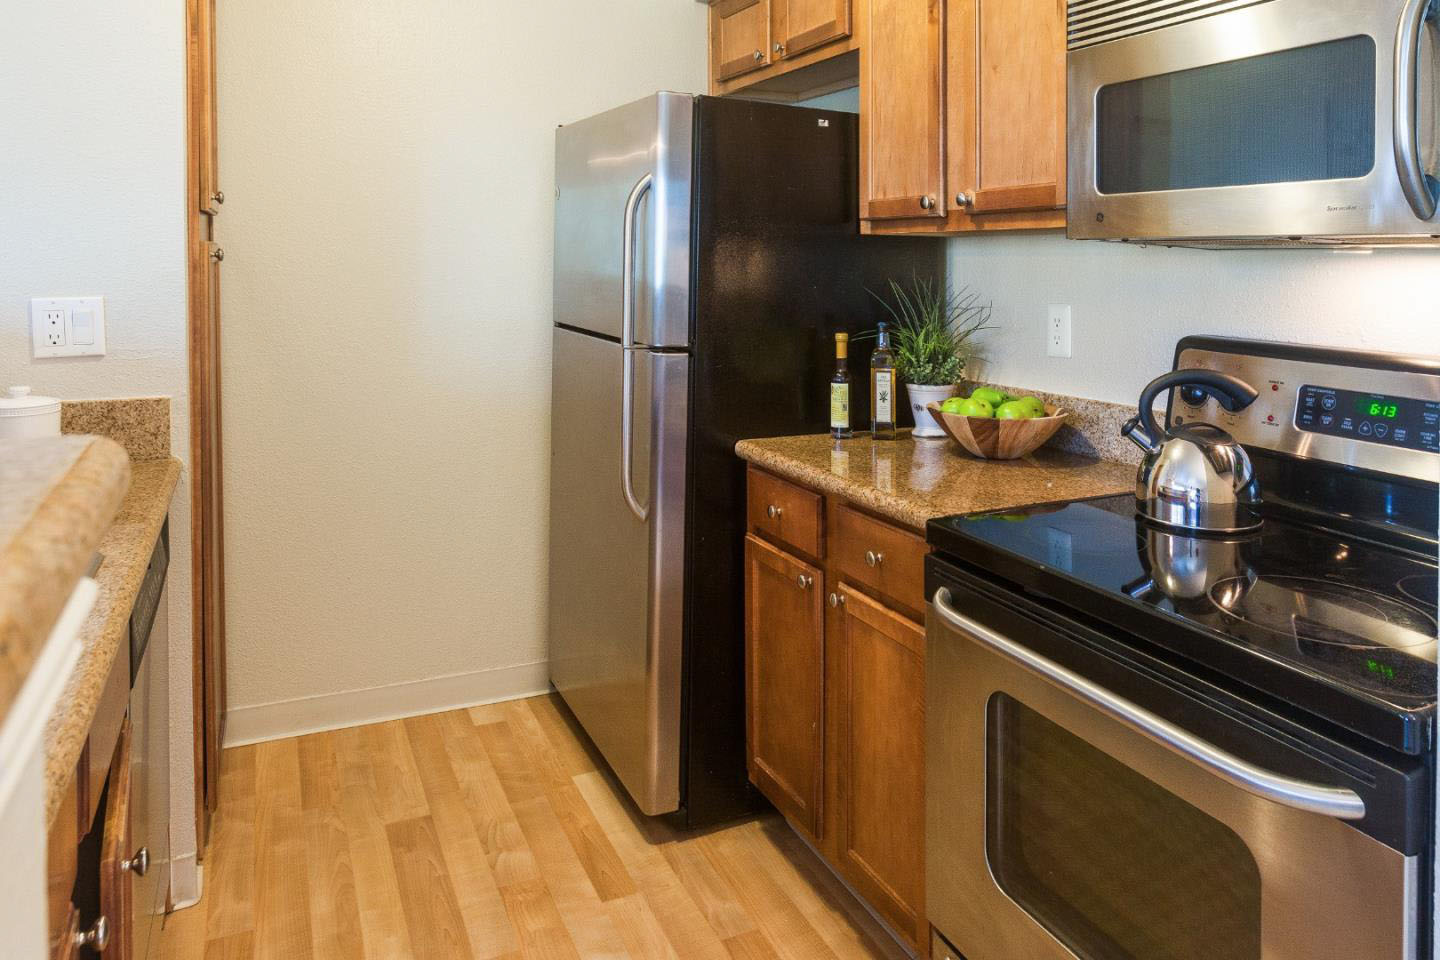 Home Shared Garage & Equipped Kitchen In Westside